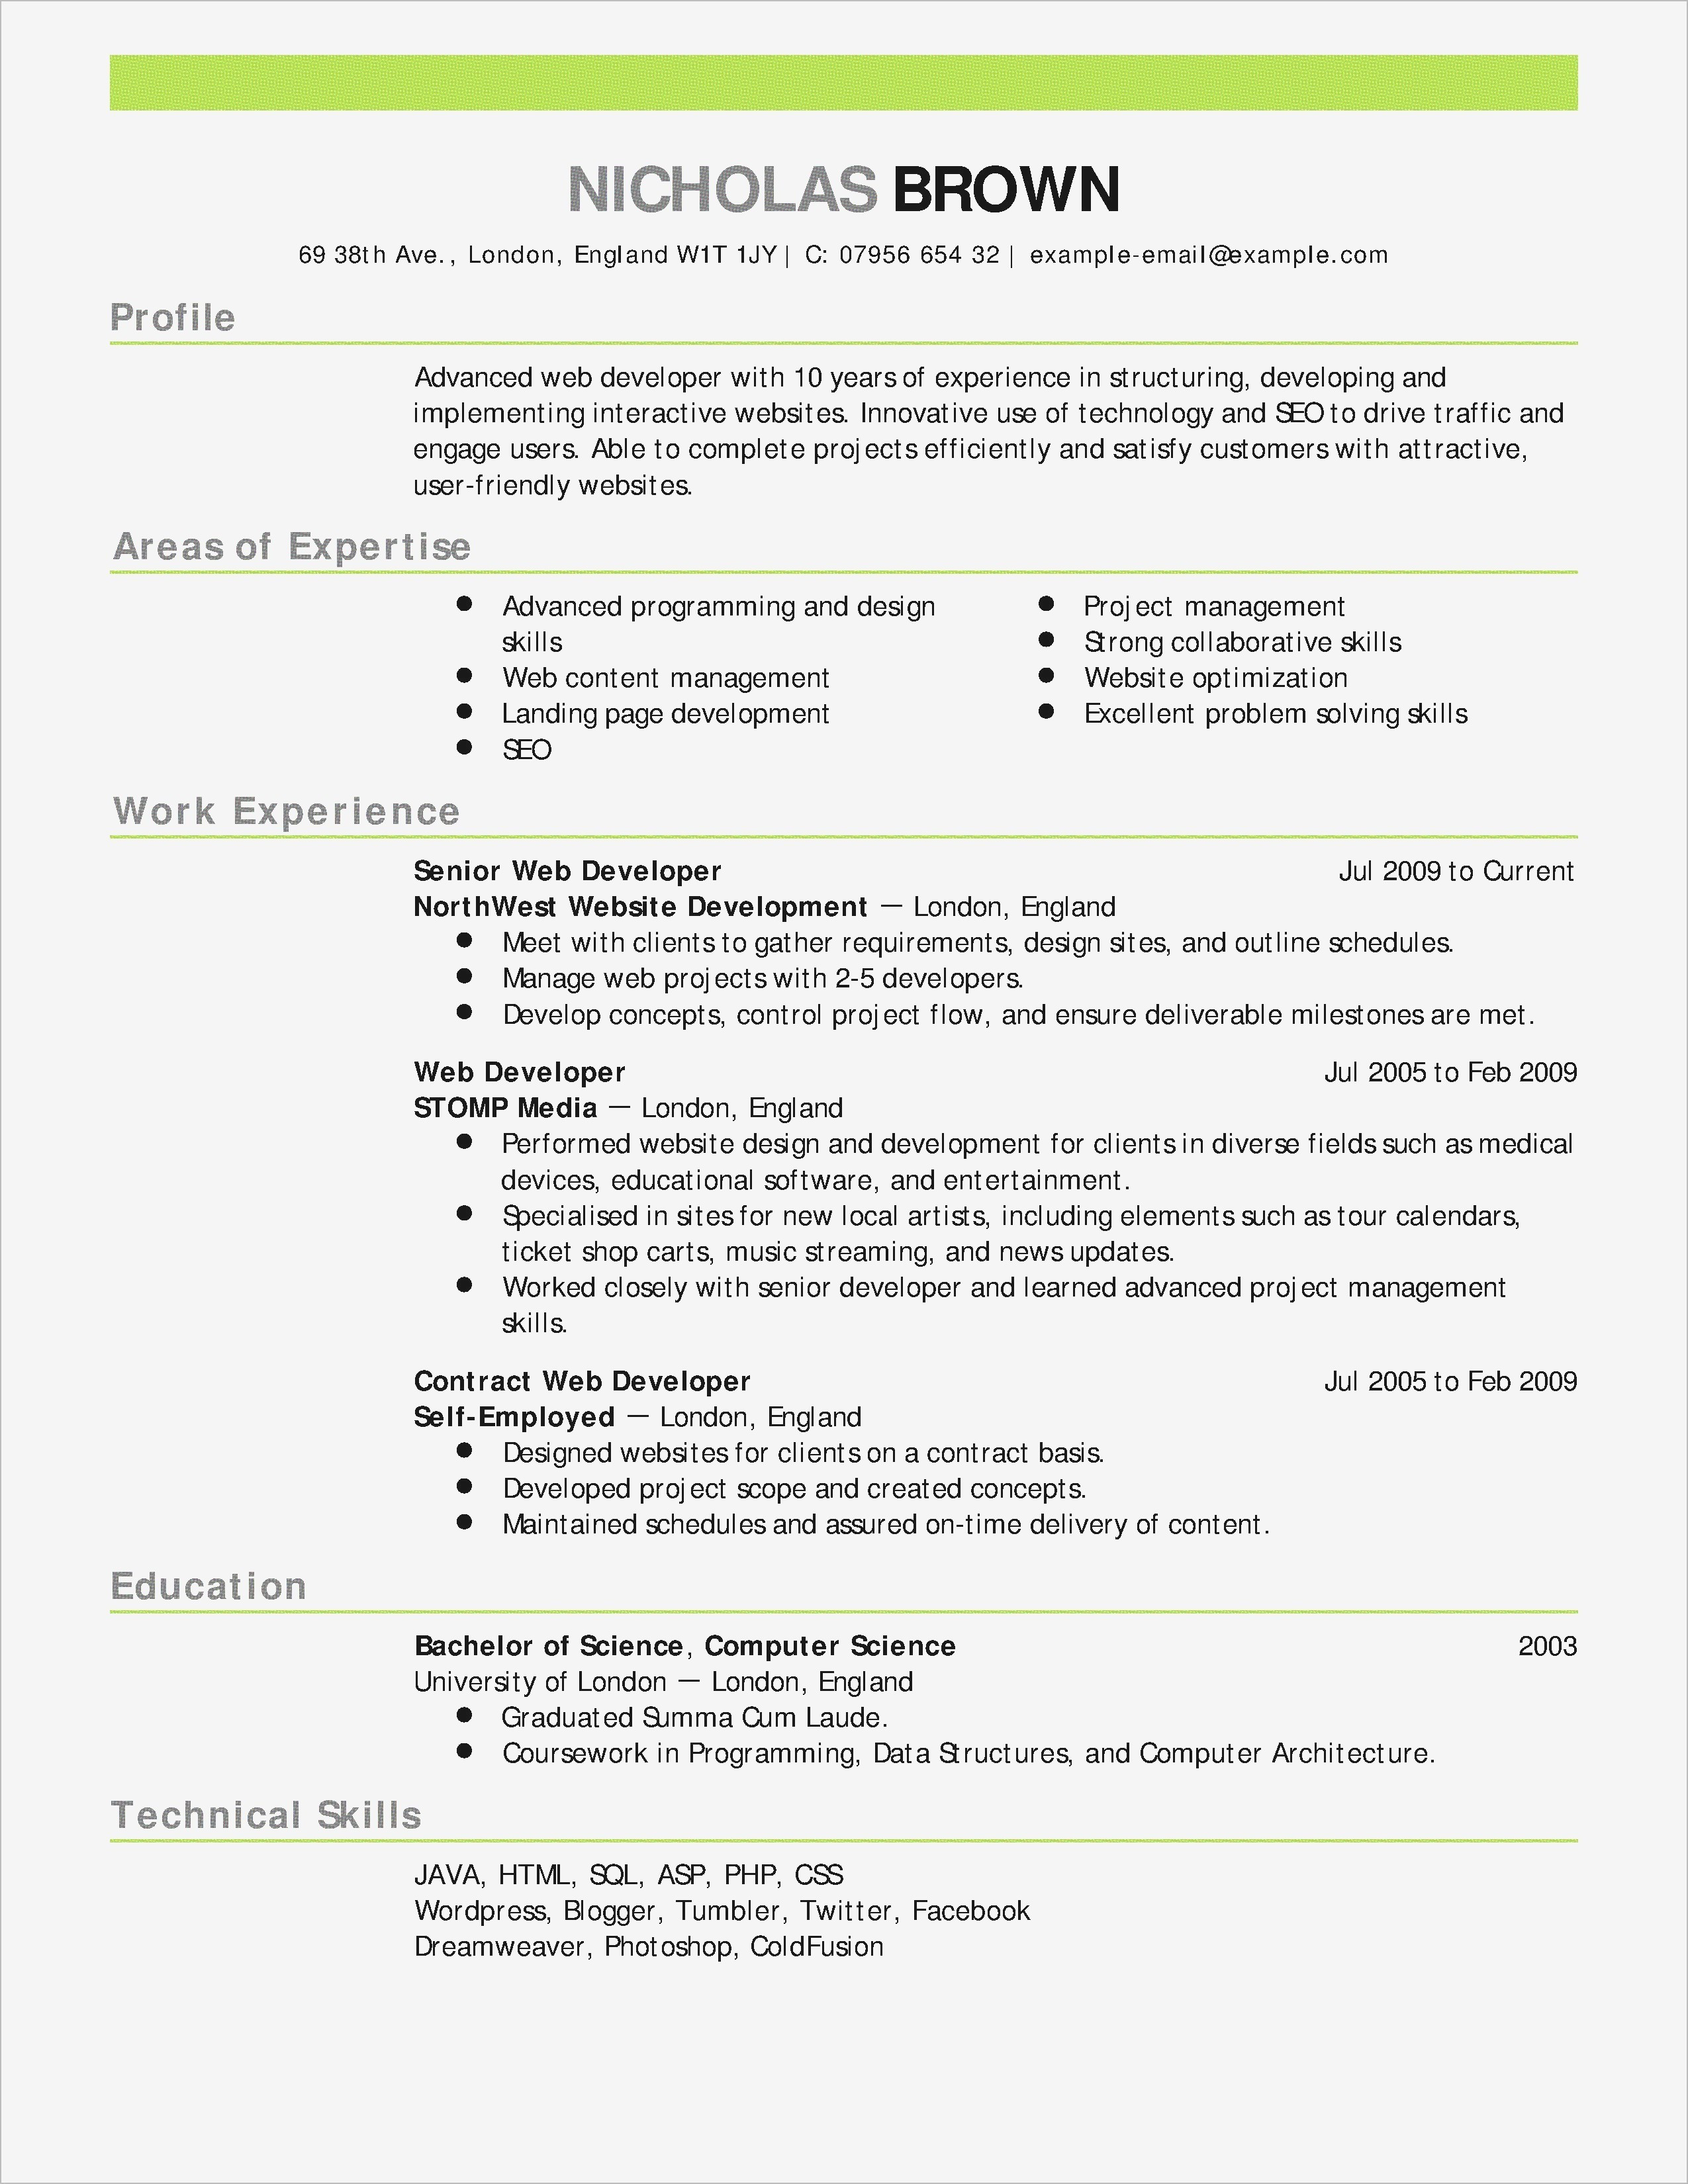 Ats Resume Scanning - 25 ats Scan – St Resume and Covering Letter